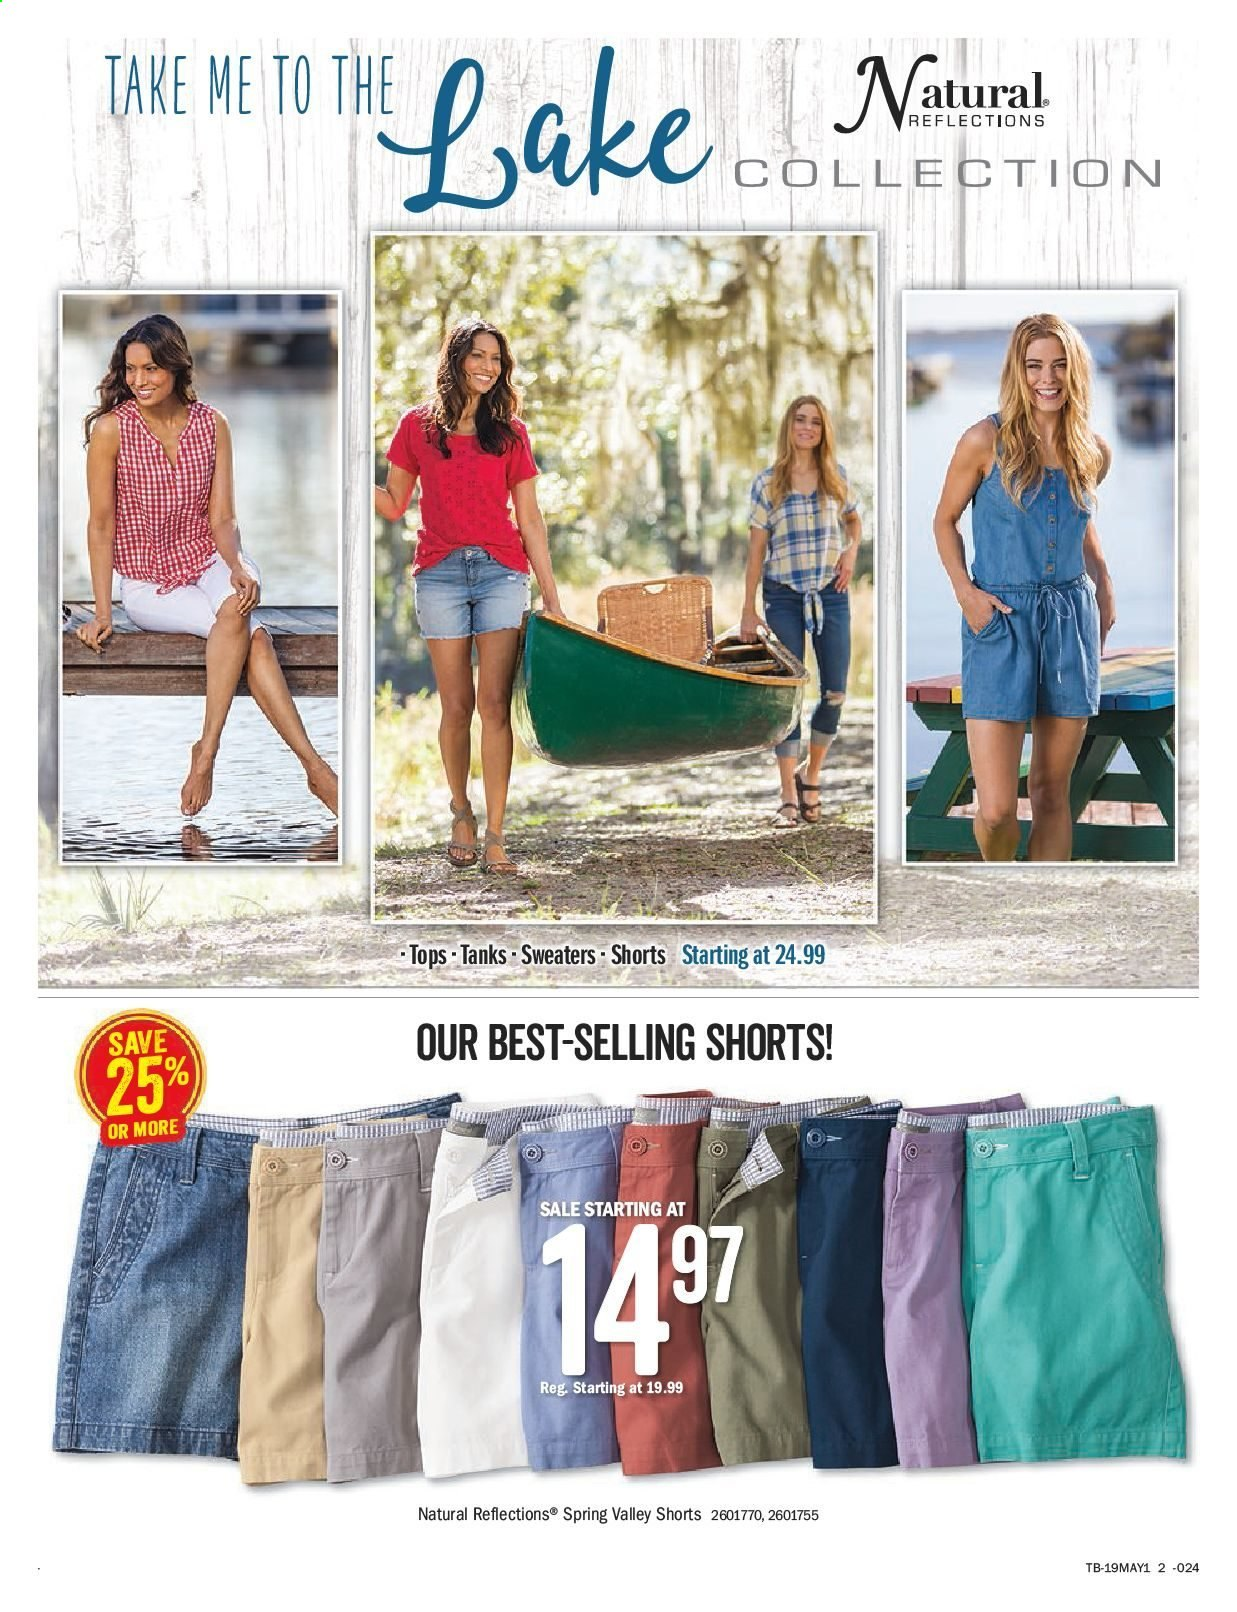 Bass Pro Shops Flyer  - April 26, 2019 - May 12, 2019. Page 2.